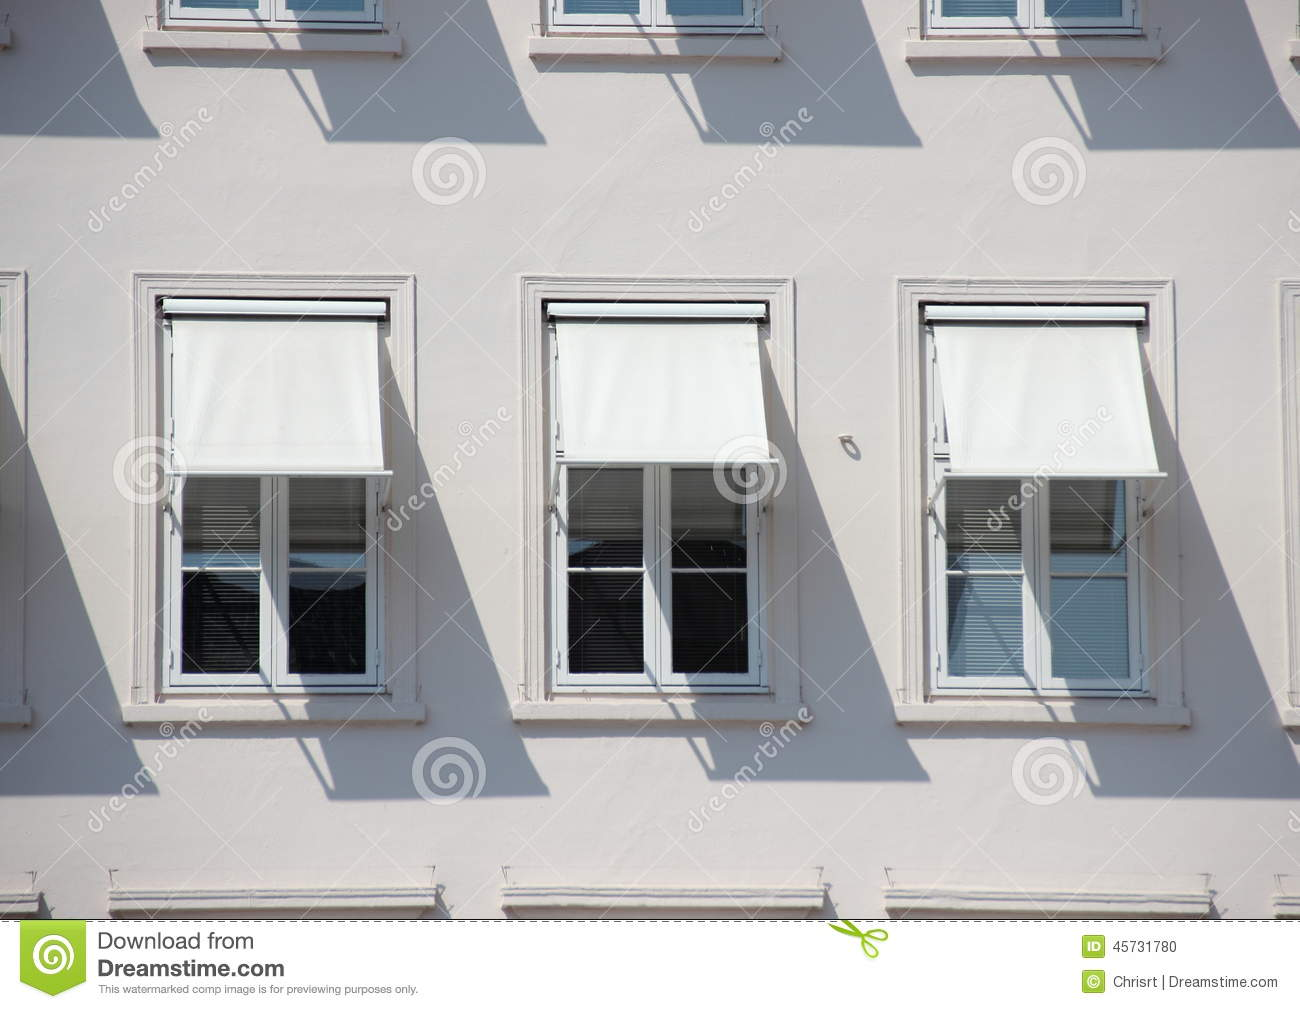 Three Windows On Grey Building With White Awnings And